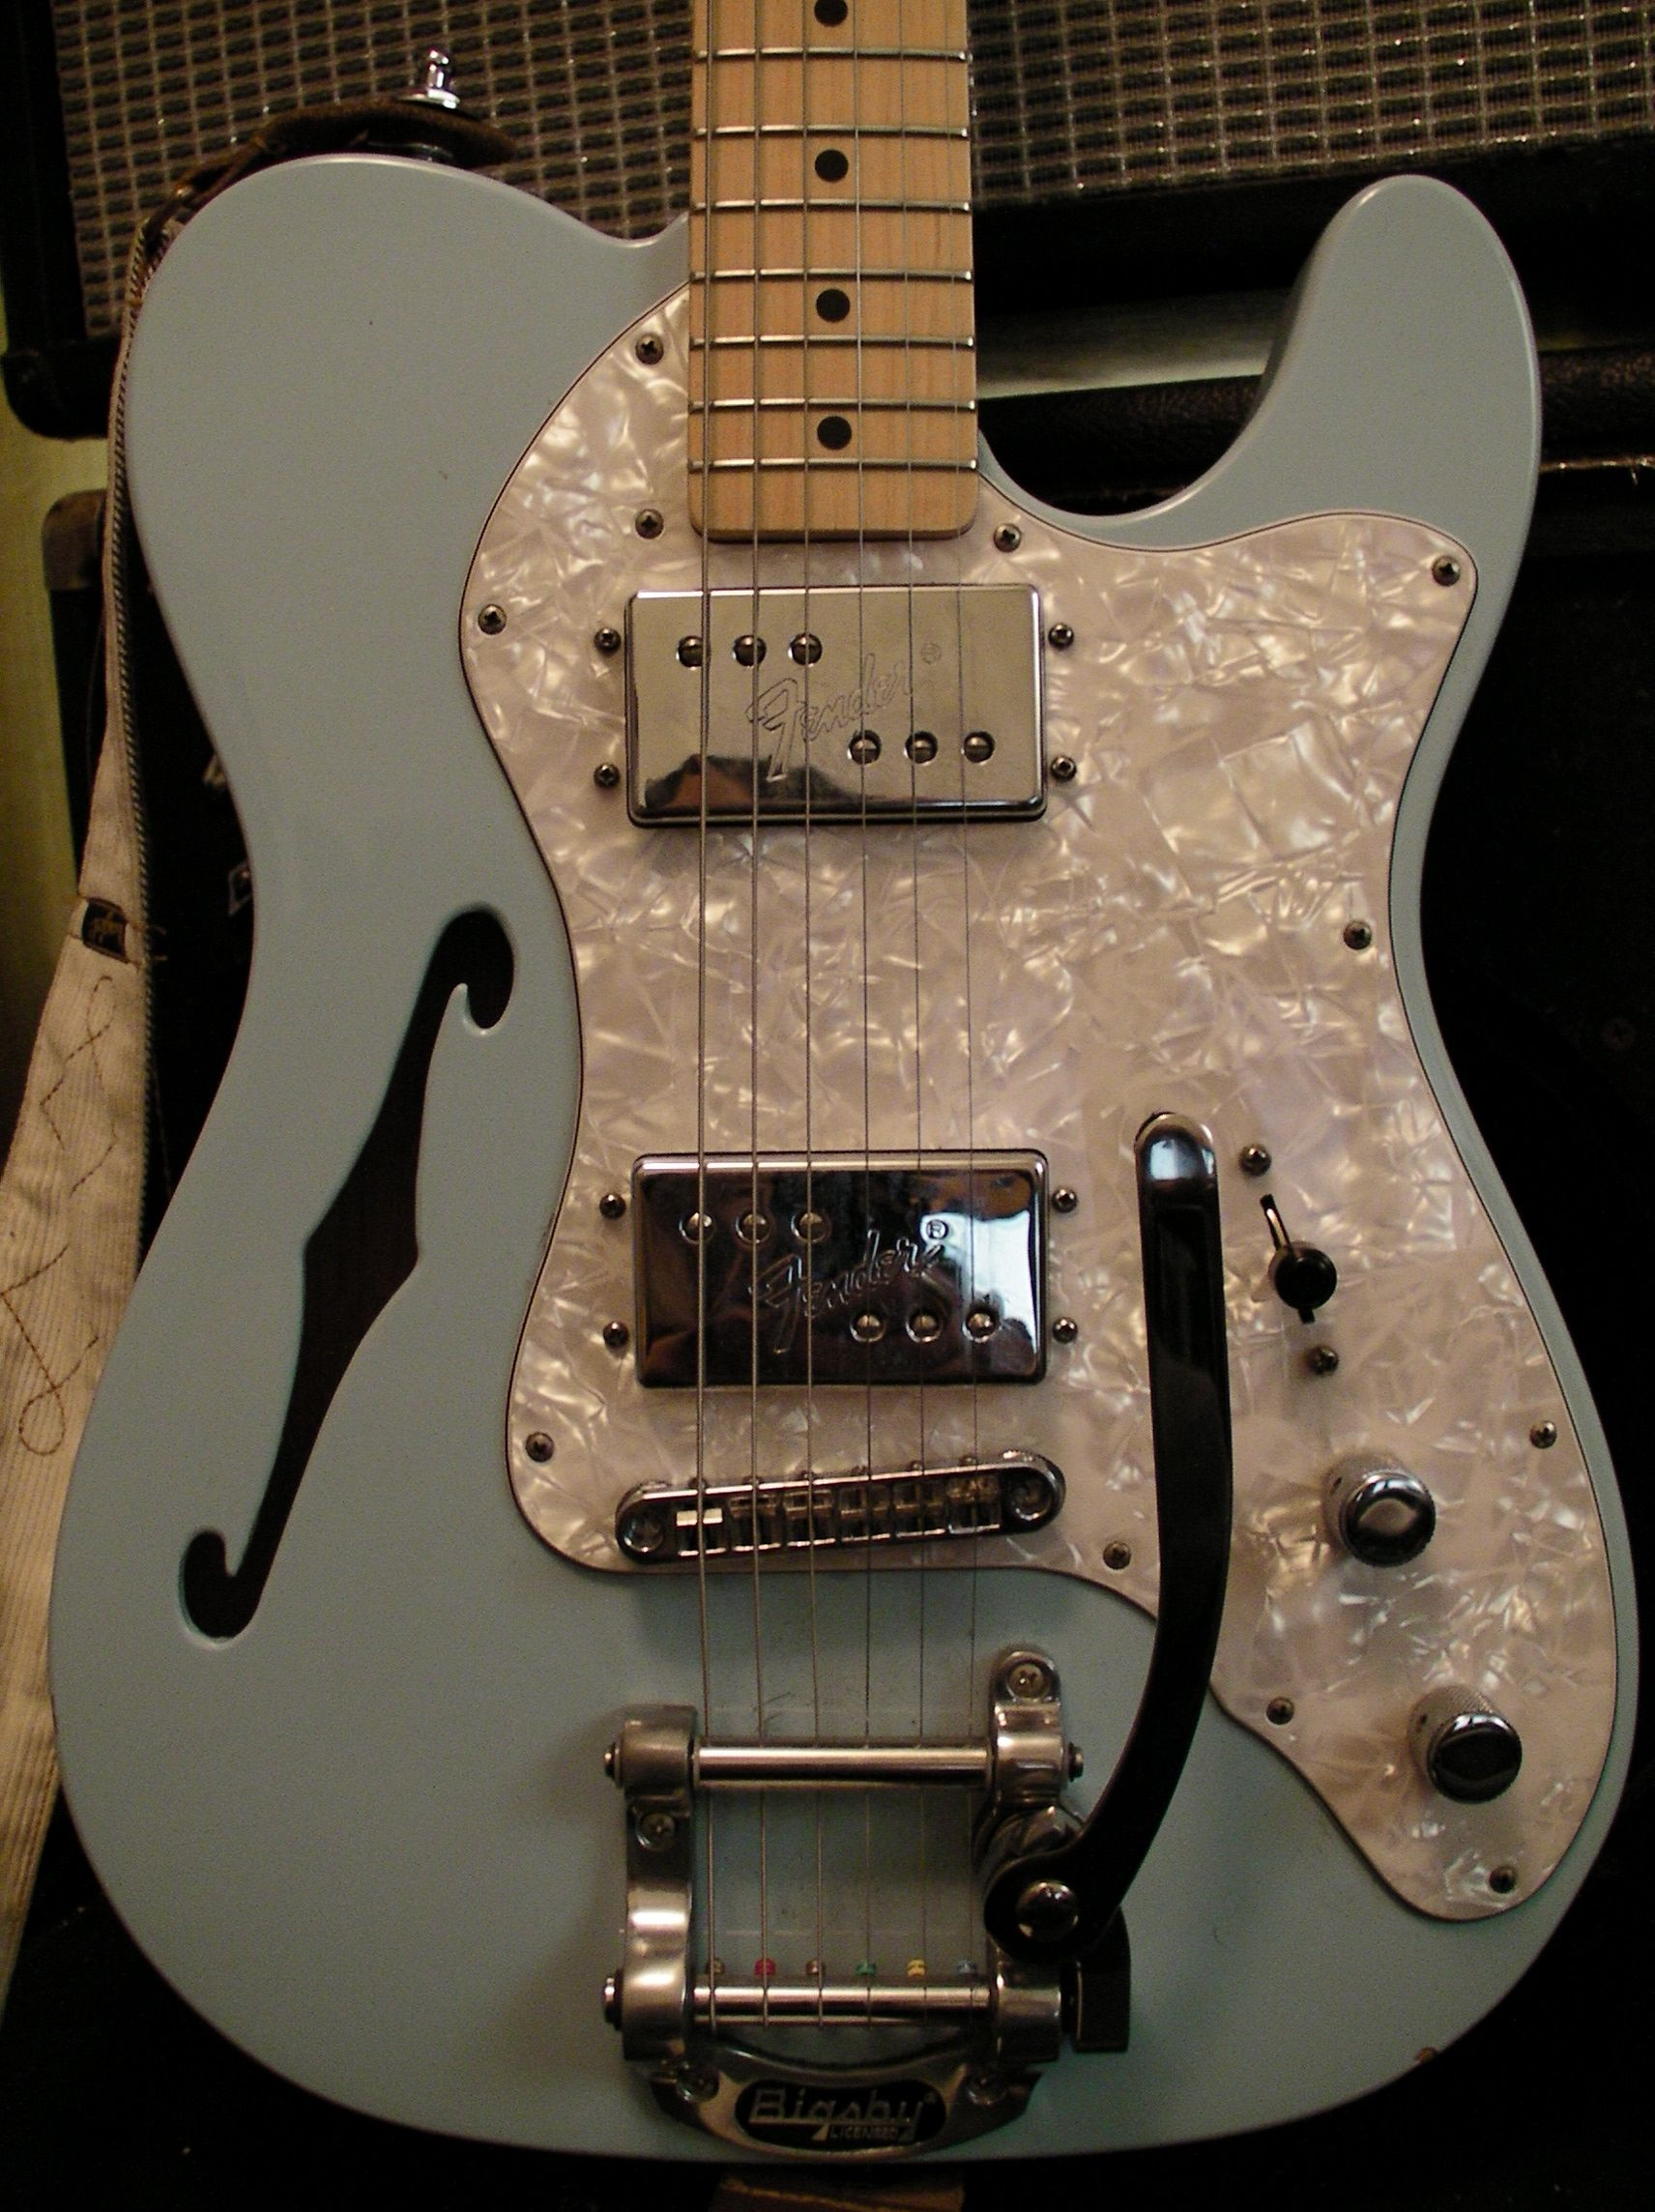 72 telecaster thinline bigsby gorgeous surf blue or seafoam green lighter than a traditional [ 1712 x 2288 Pixel ]